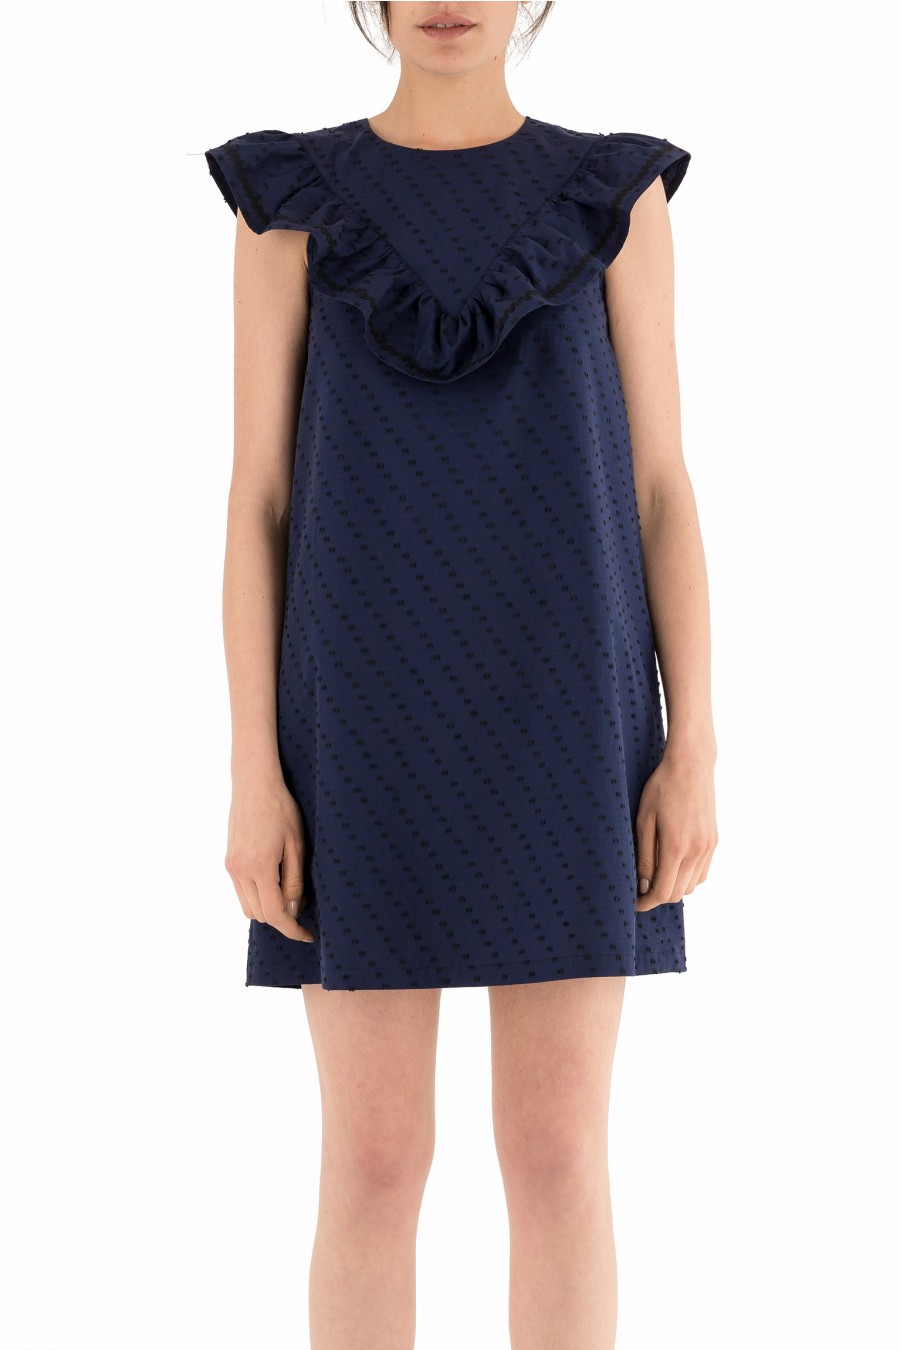 A-line dress with wide triangle collar